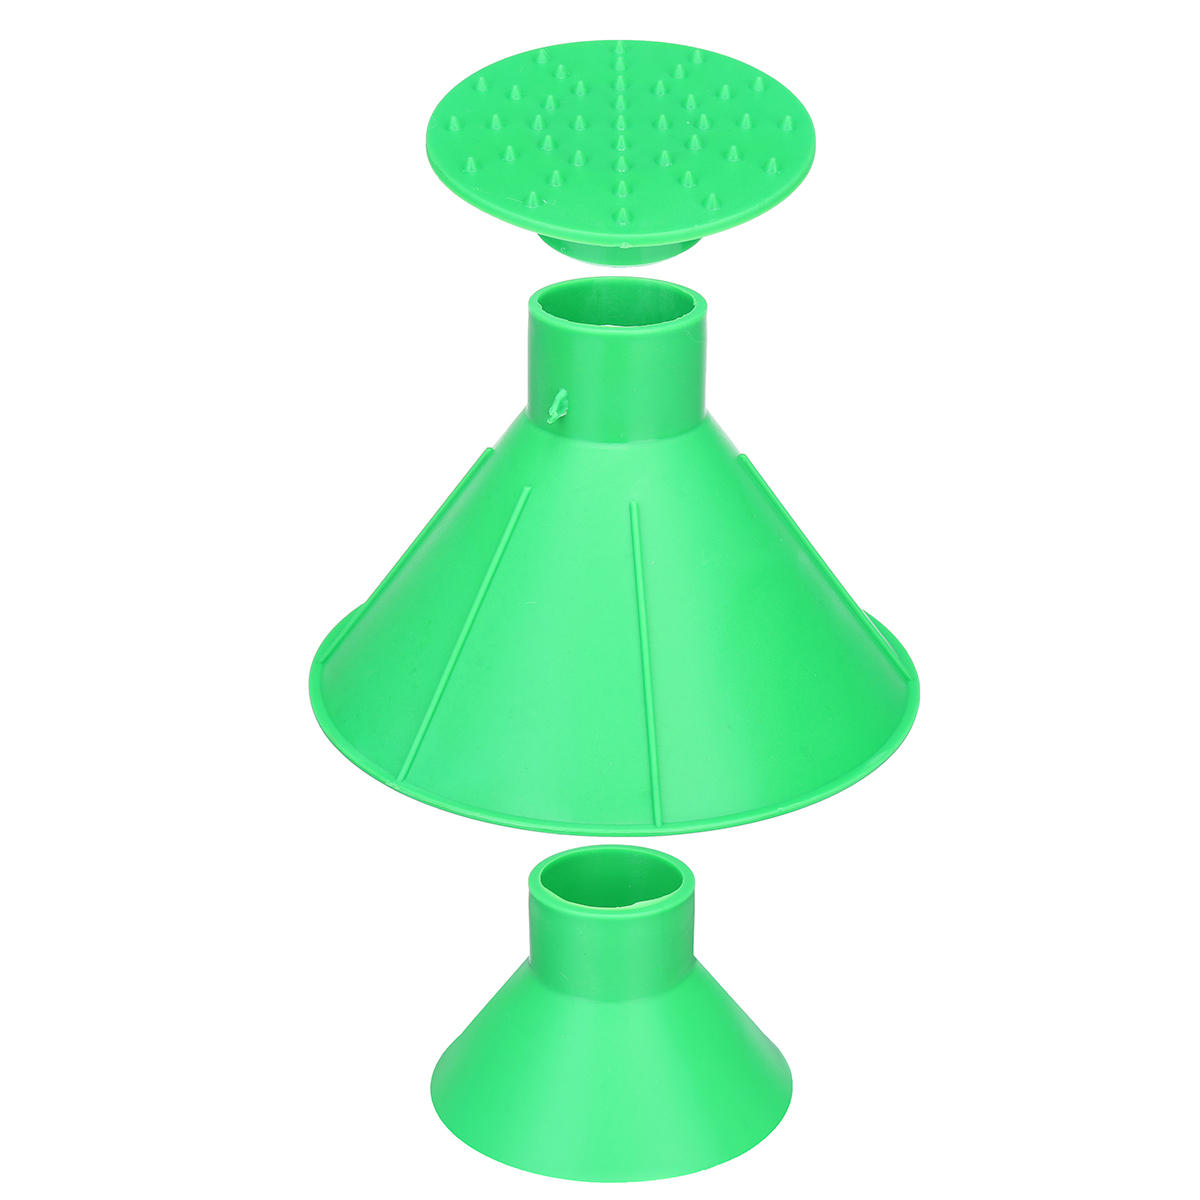 Magical Car Windshield Ice Scrapers Tool Cone Shaped Outdoor Funnel Remover Snow